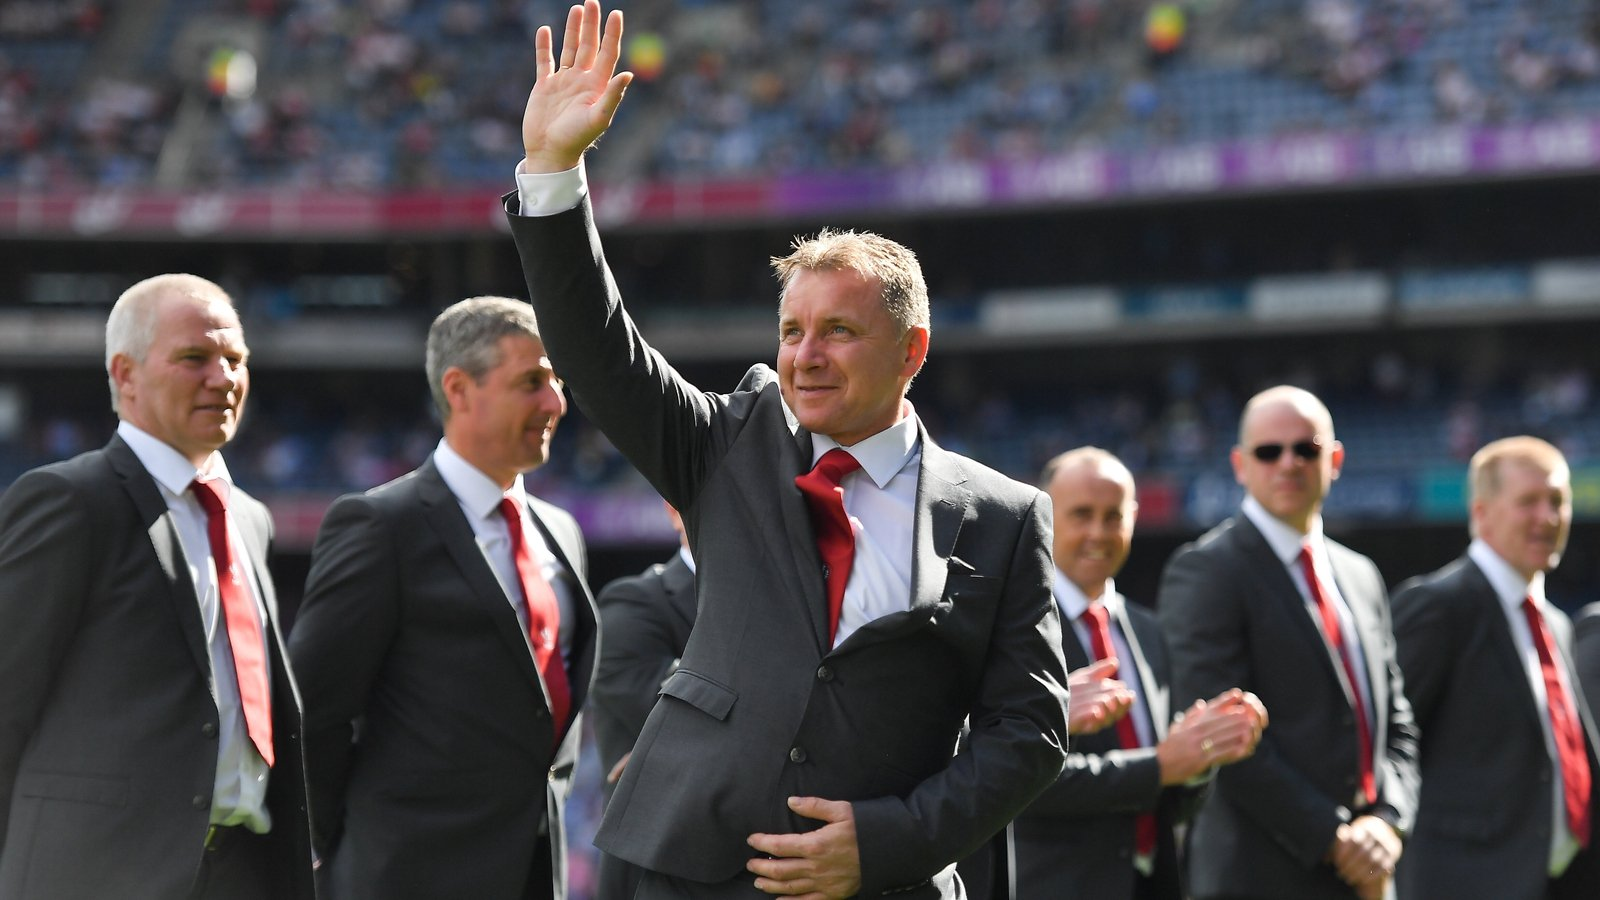 Image - Kieran McKeever and the Derry 1993 All-Ireland winning team who were honoured at Croke Park in 2018